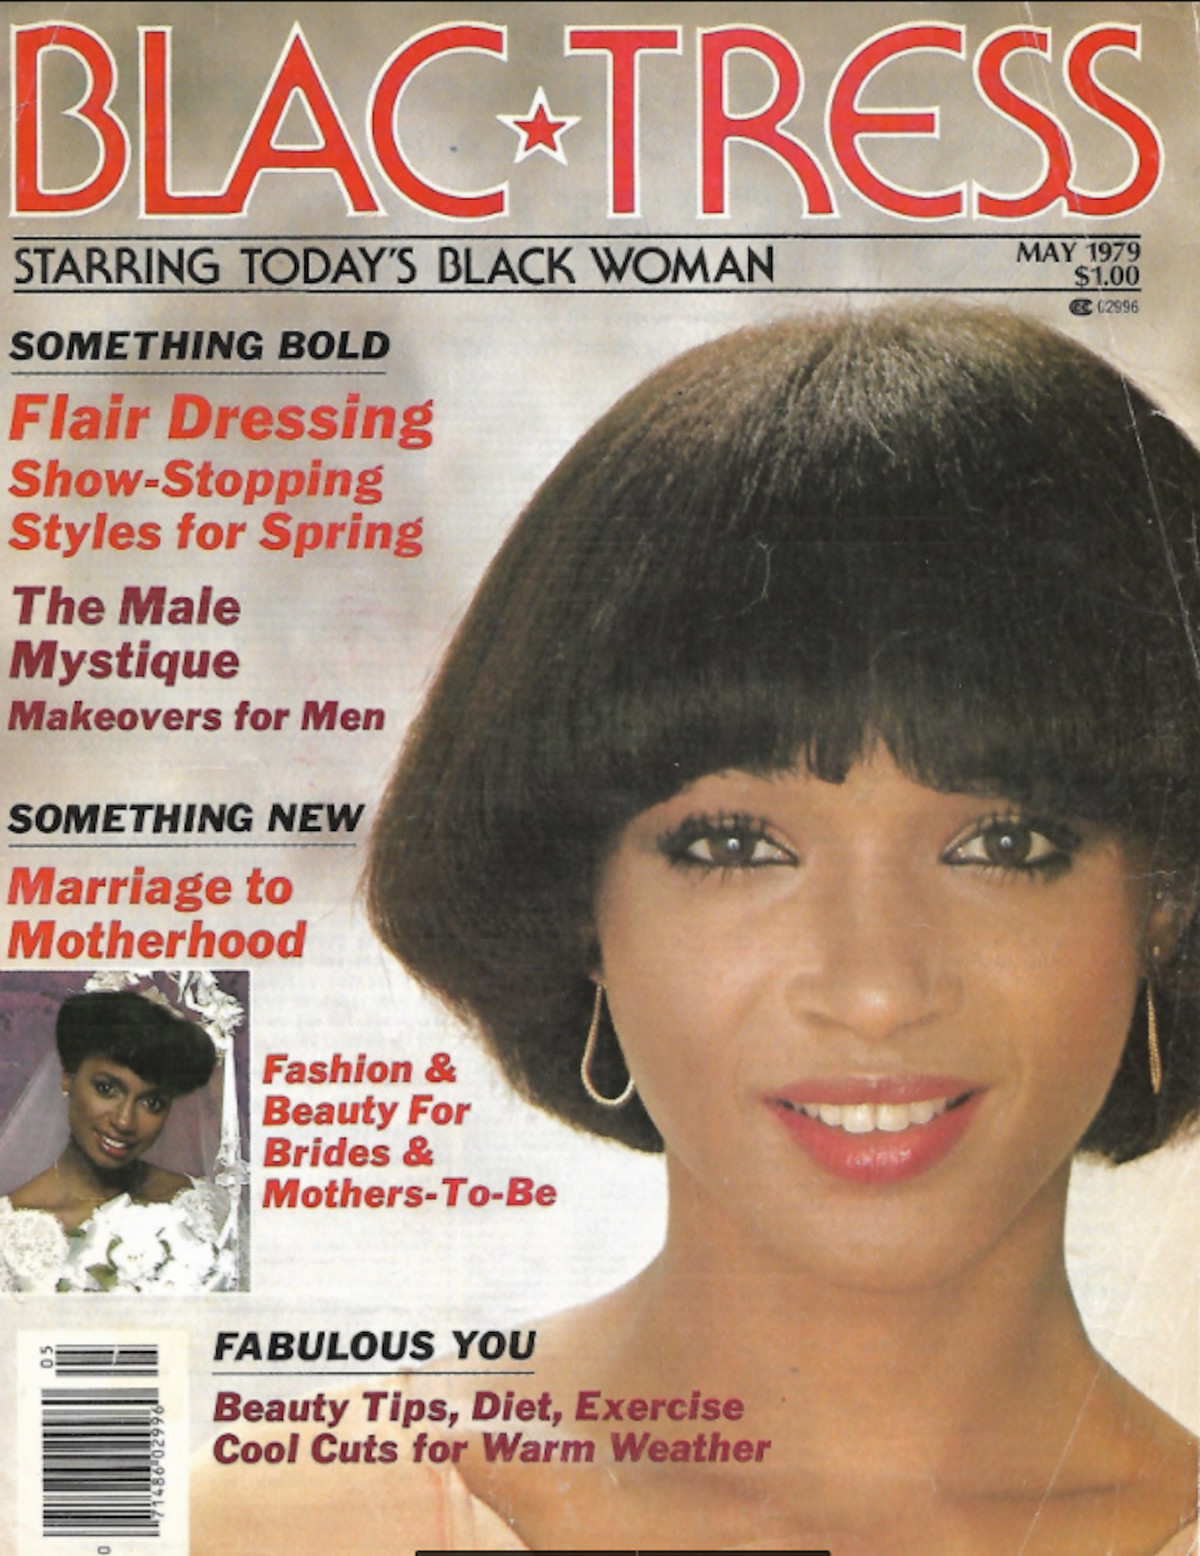 Ernest Collins shot his sister-in-law Carmen Collins for the cover of BlacTress magazine.